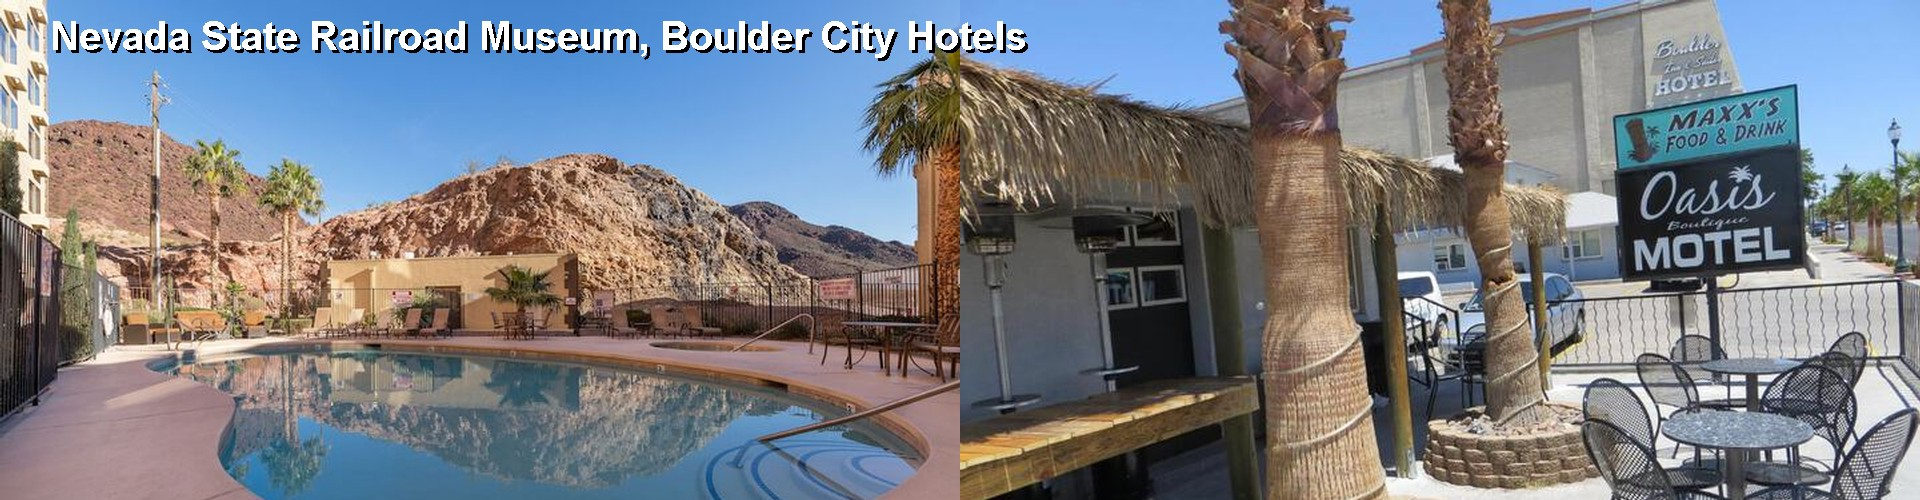 5 Best Hotels near Nevada State Railroad Museum, Boulder City